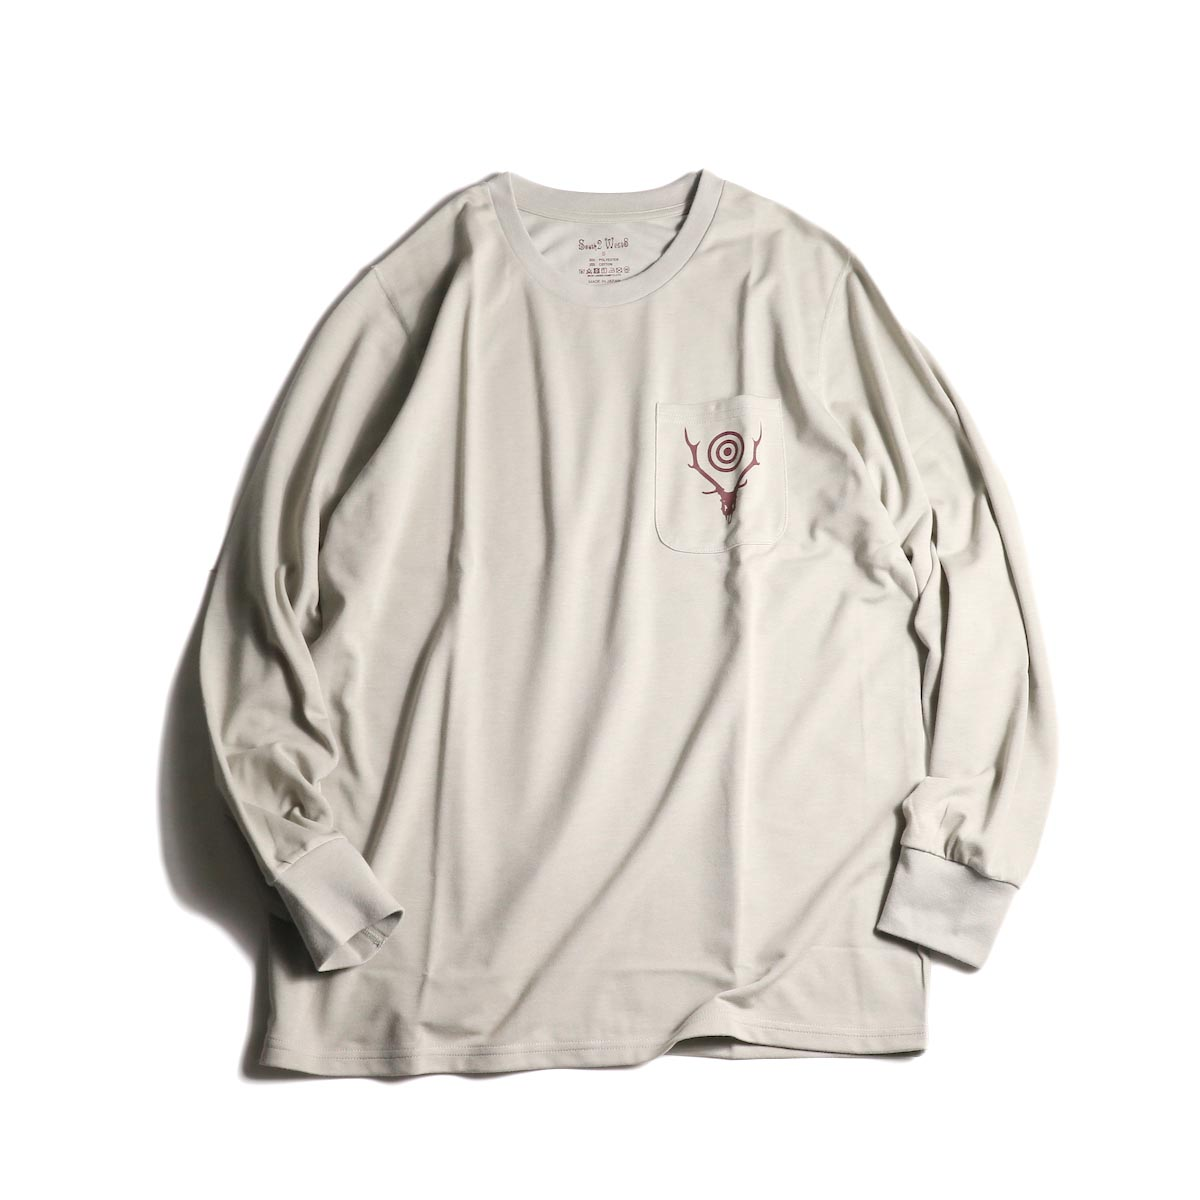 South2 West8 / L/S Round Pocket Tee -Circle Horn (Oyster)